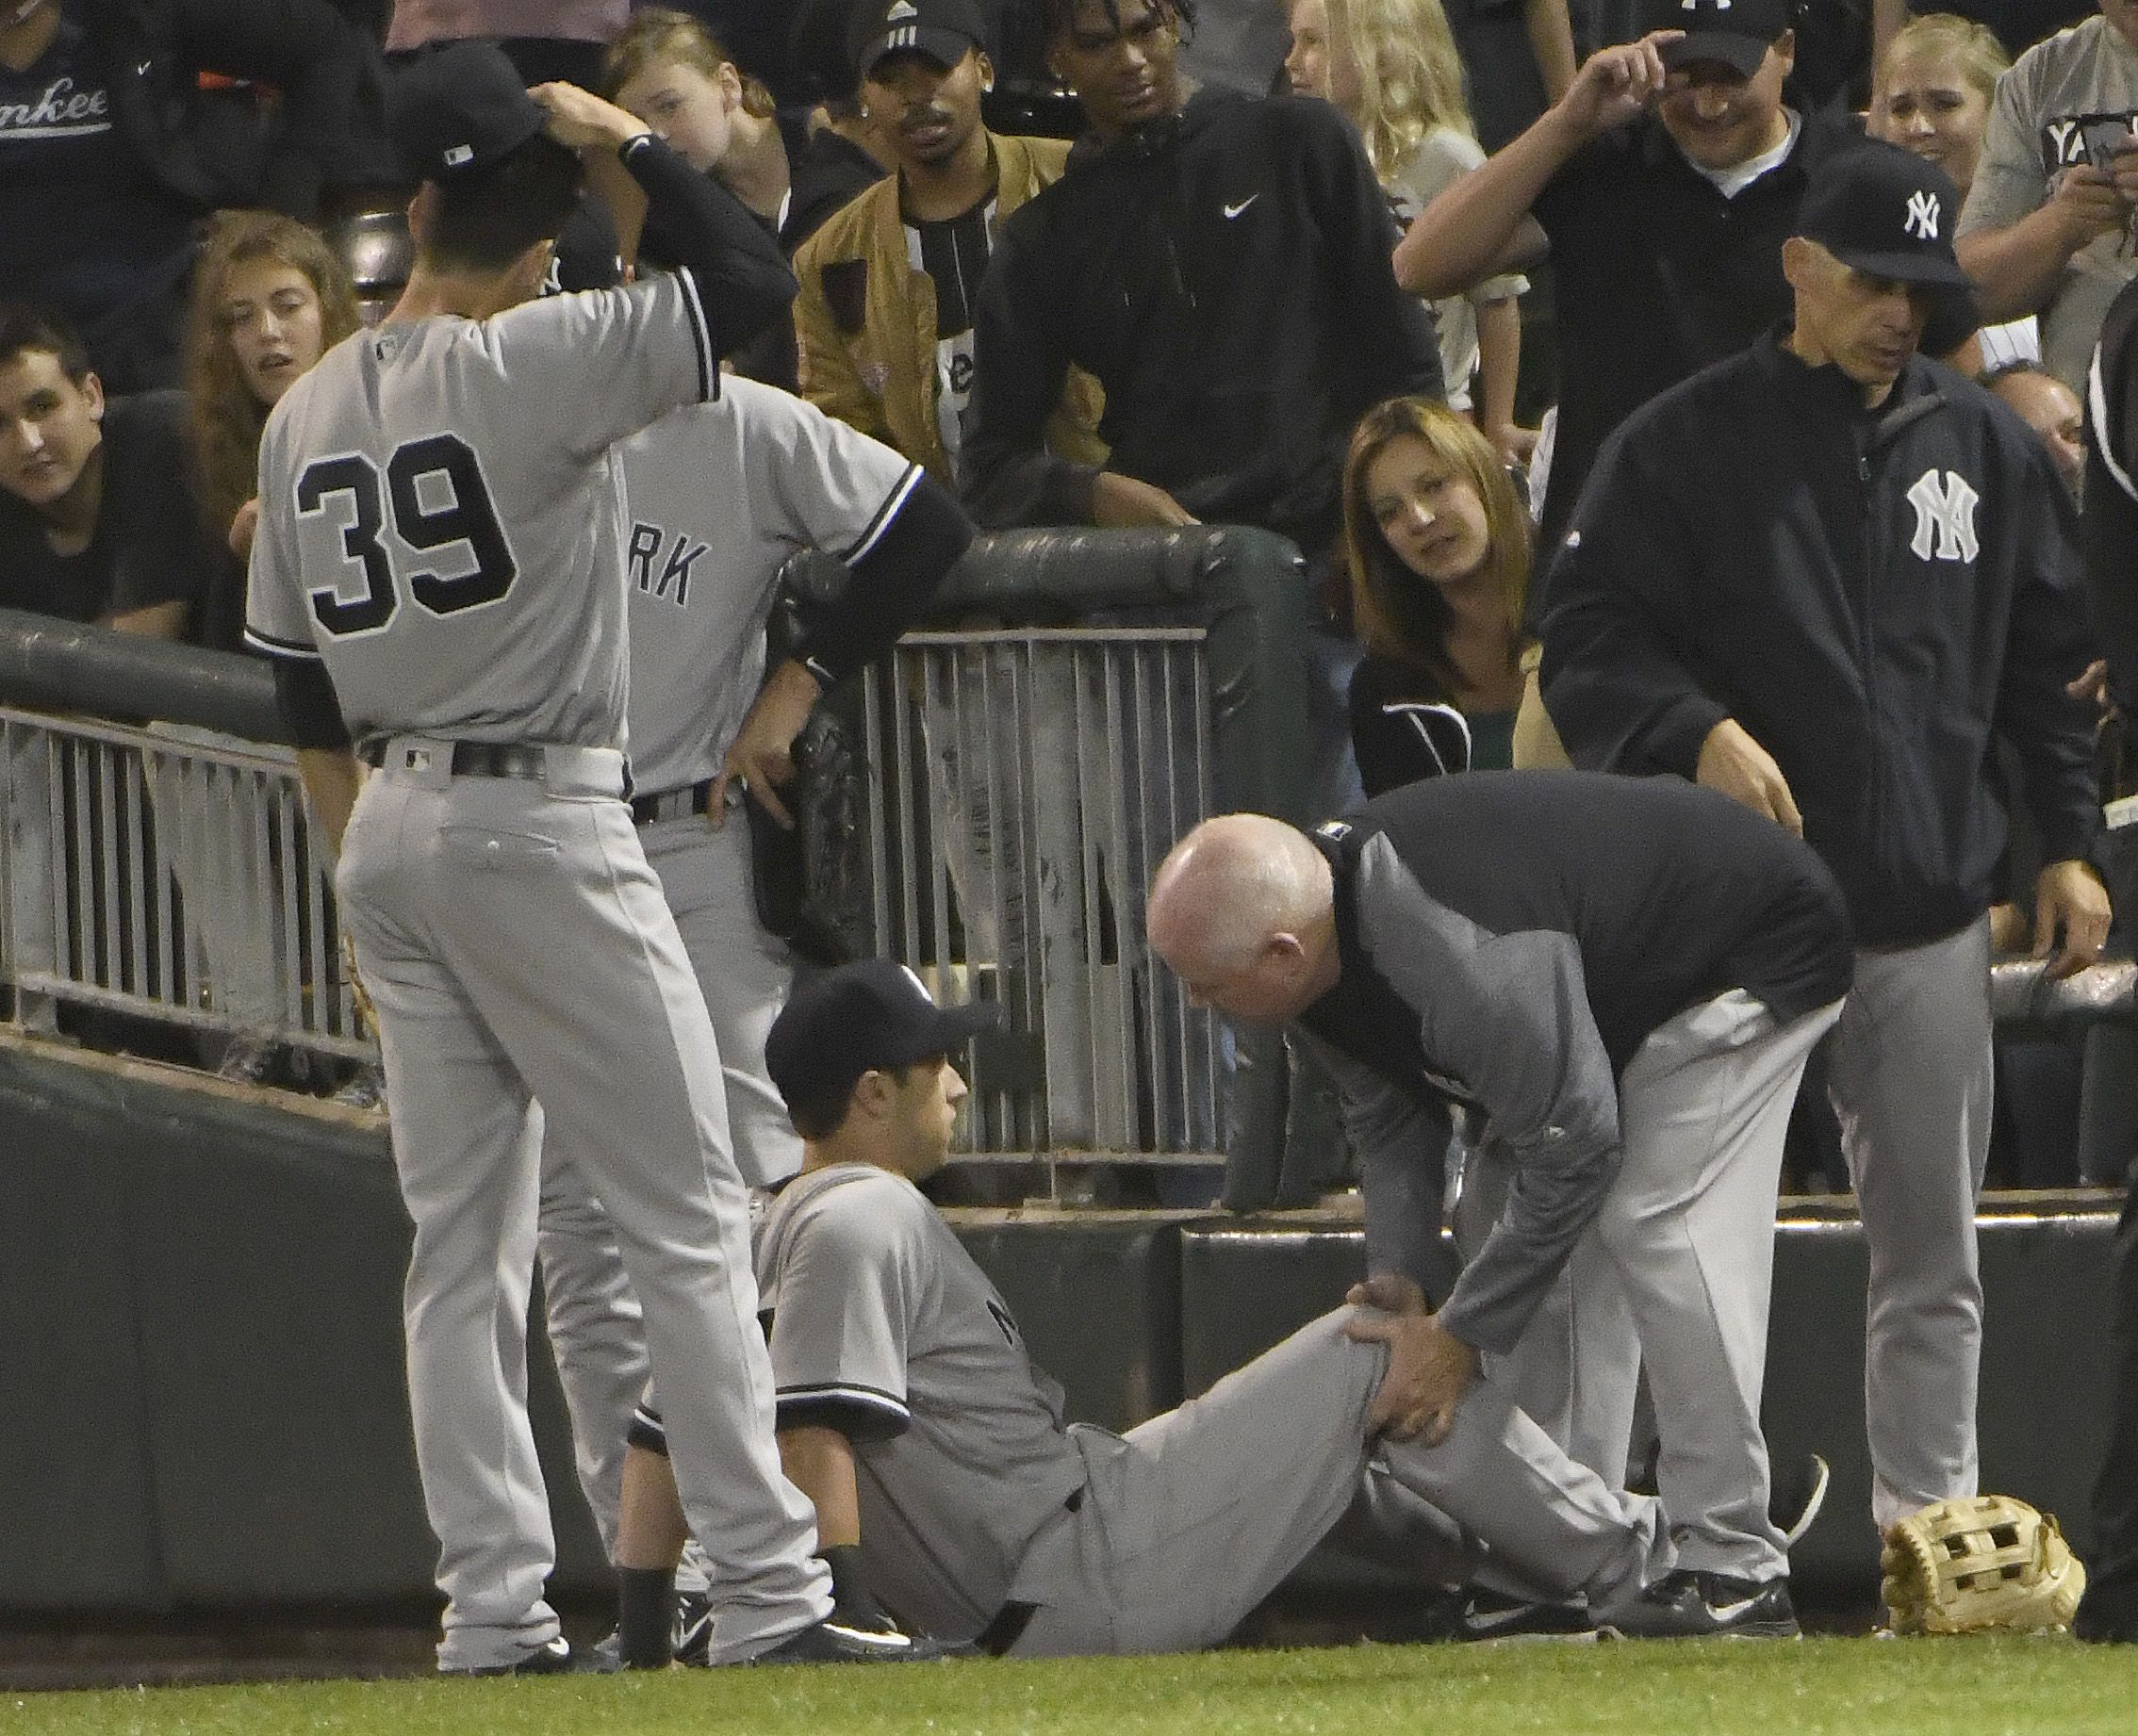 Dustin Fowler (on the ground) of the New York Yankees at Guaranteed Rate Field, Chicago, June 29.